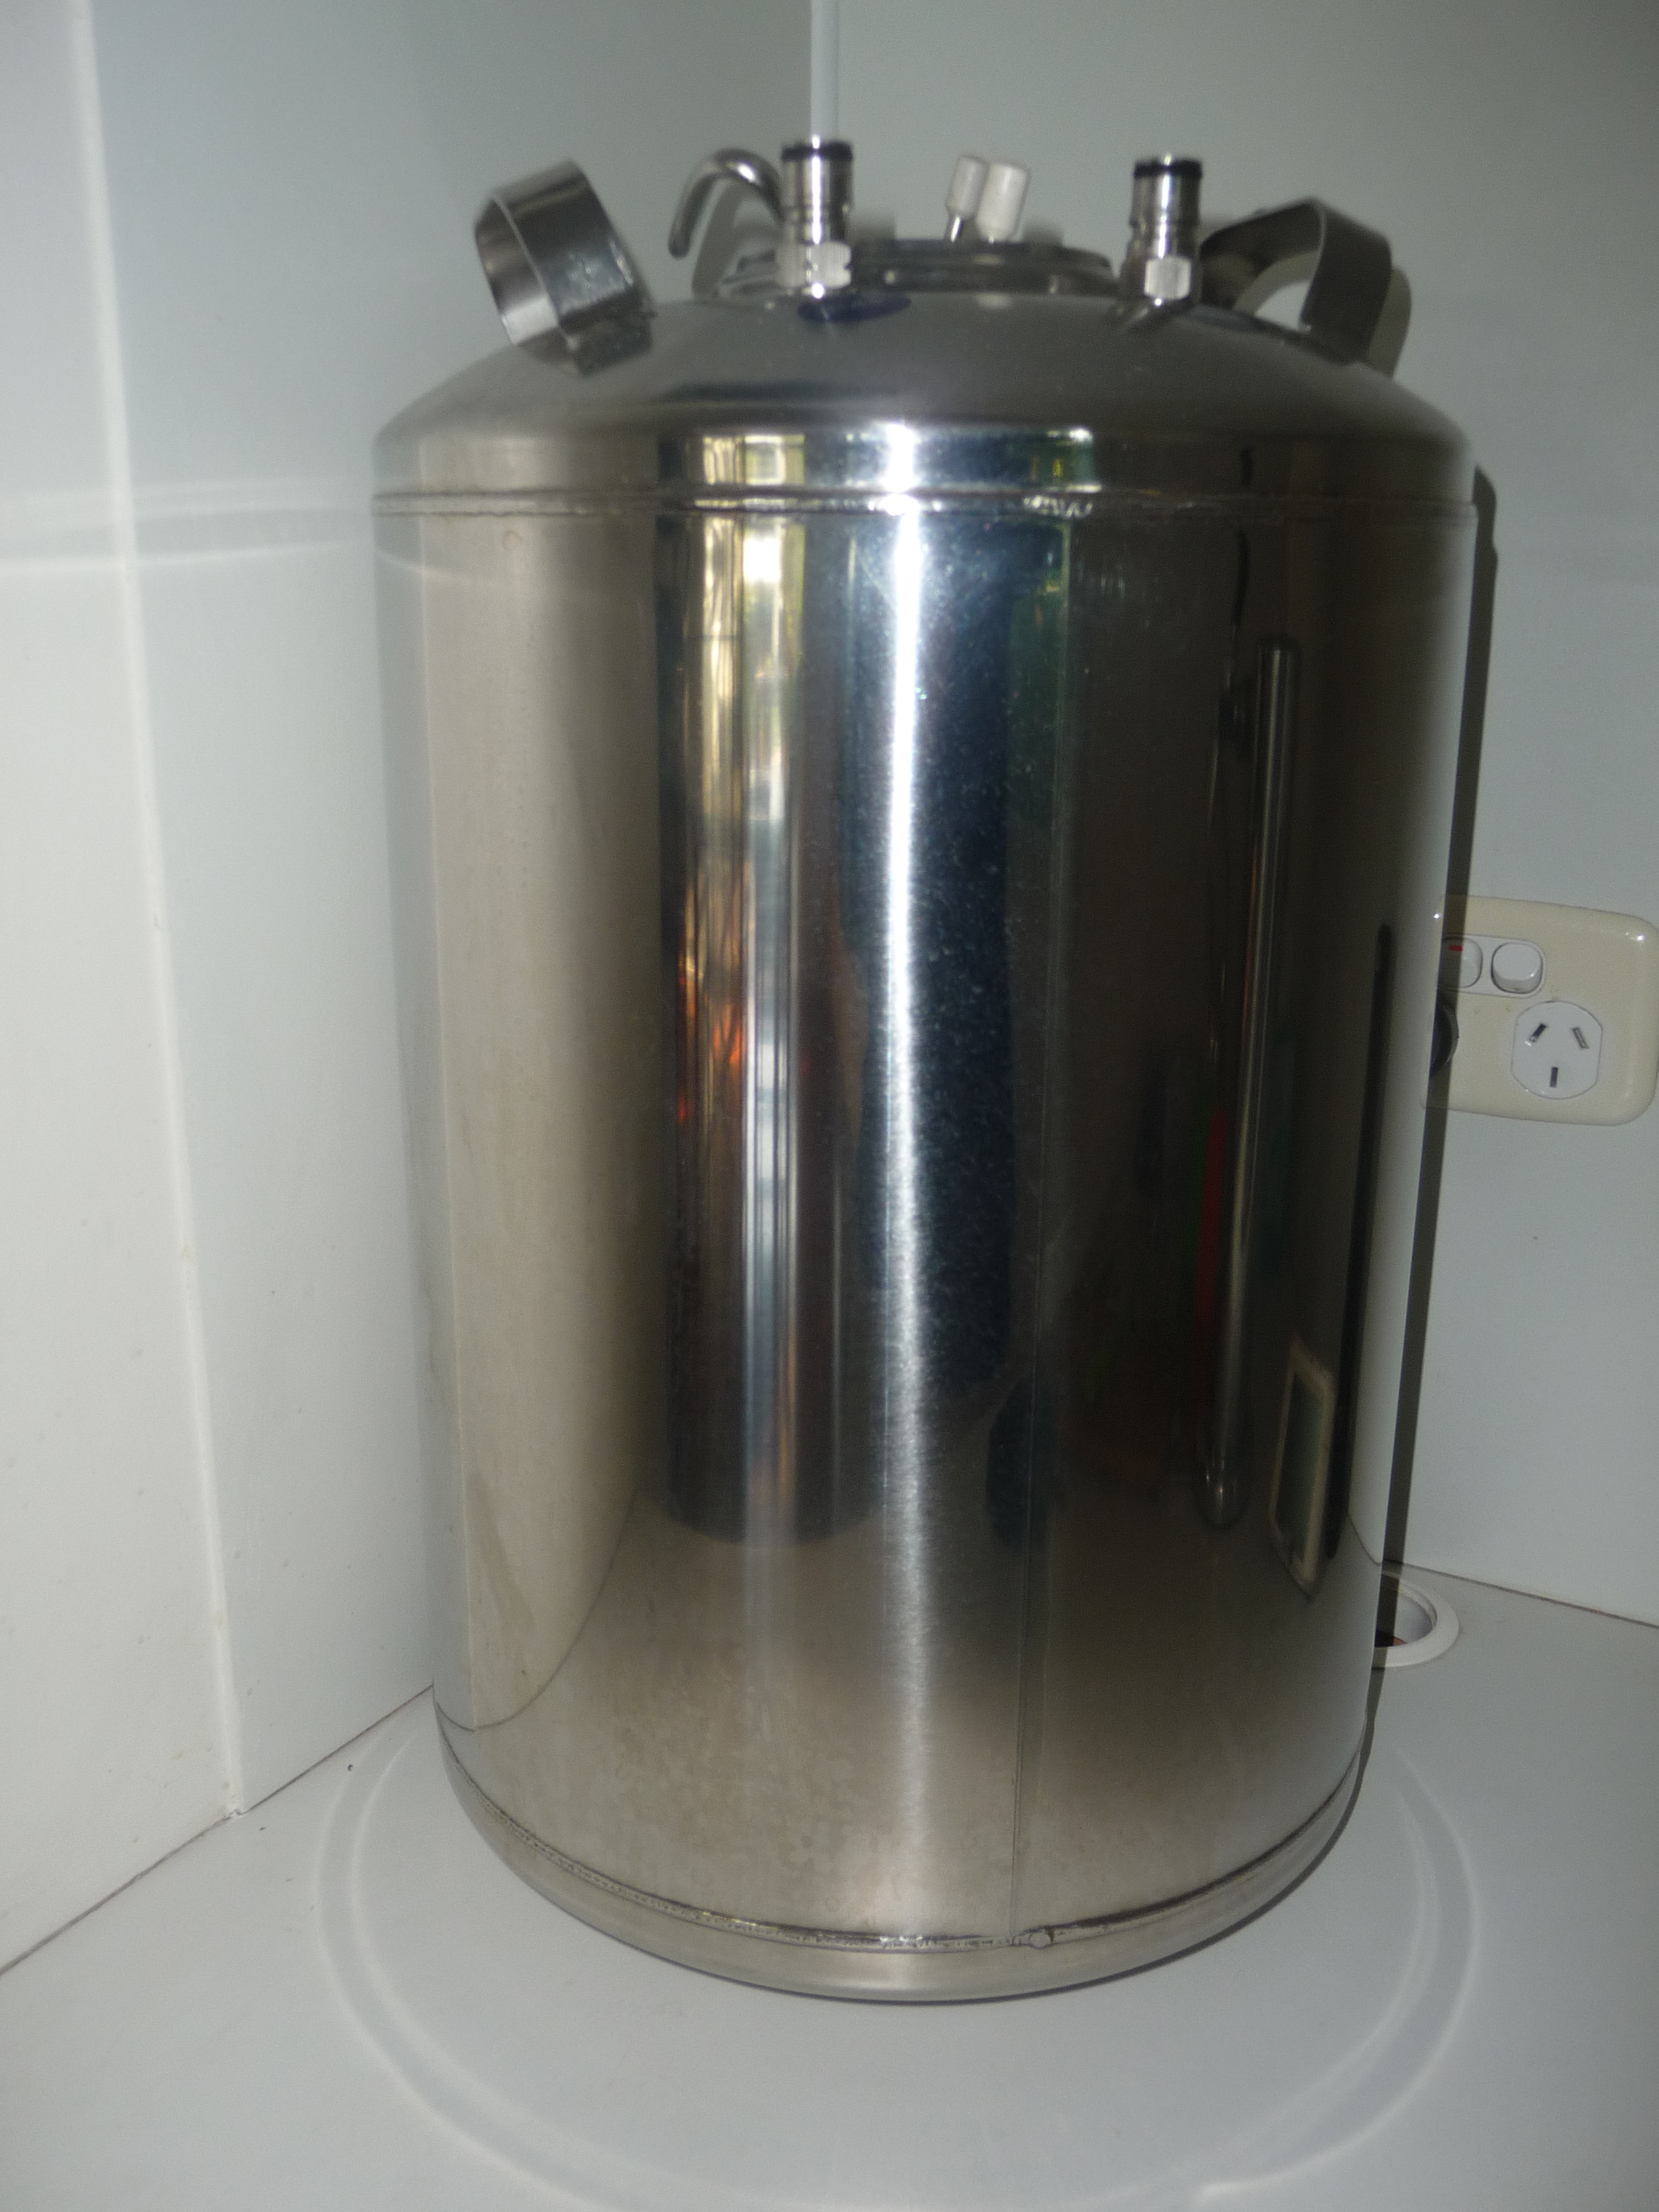 Hme brewing made easy. 23 litre keg, with instructions.  New price $270. Used twice.